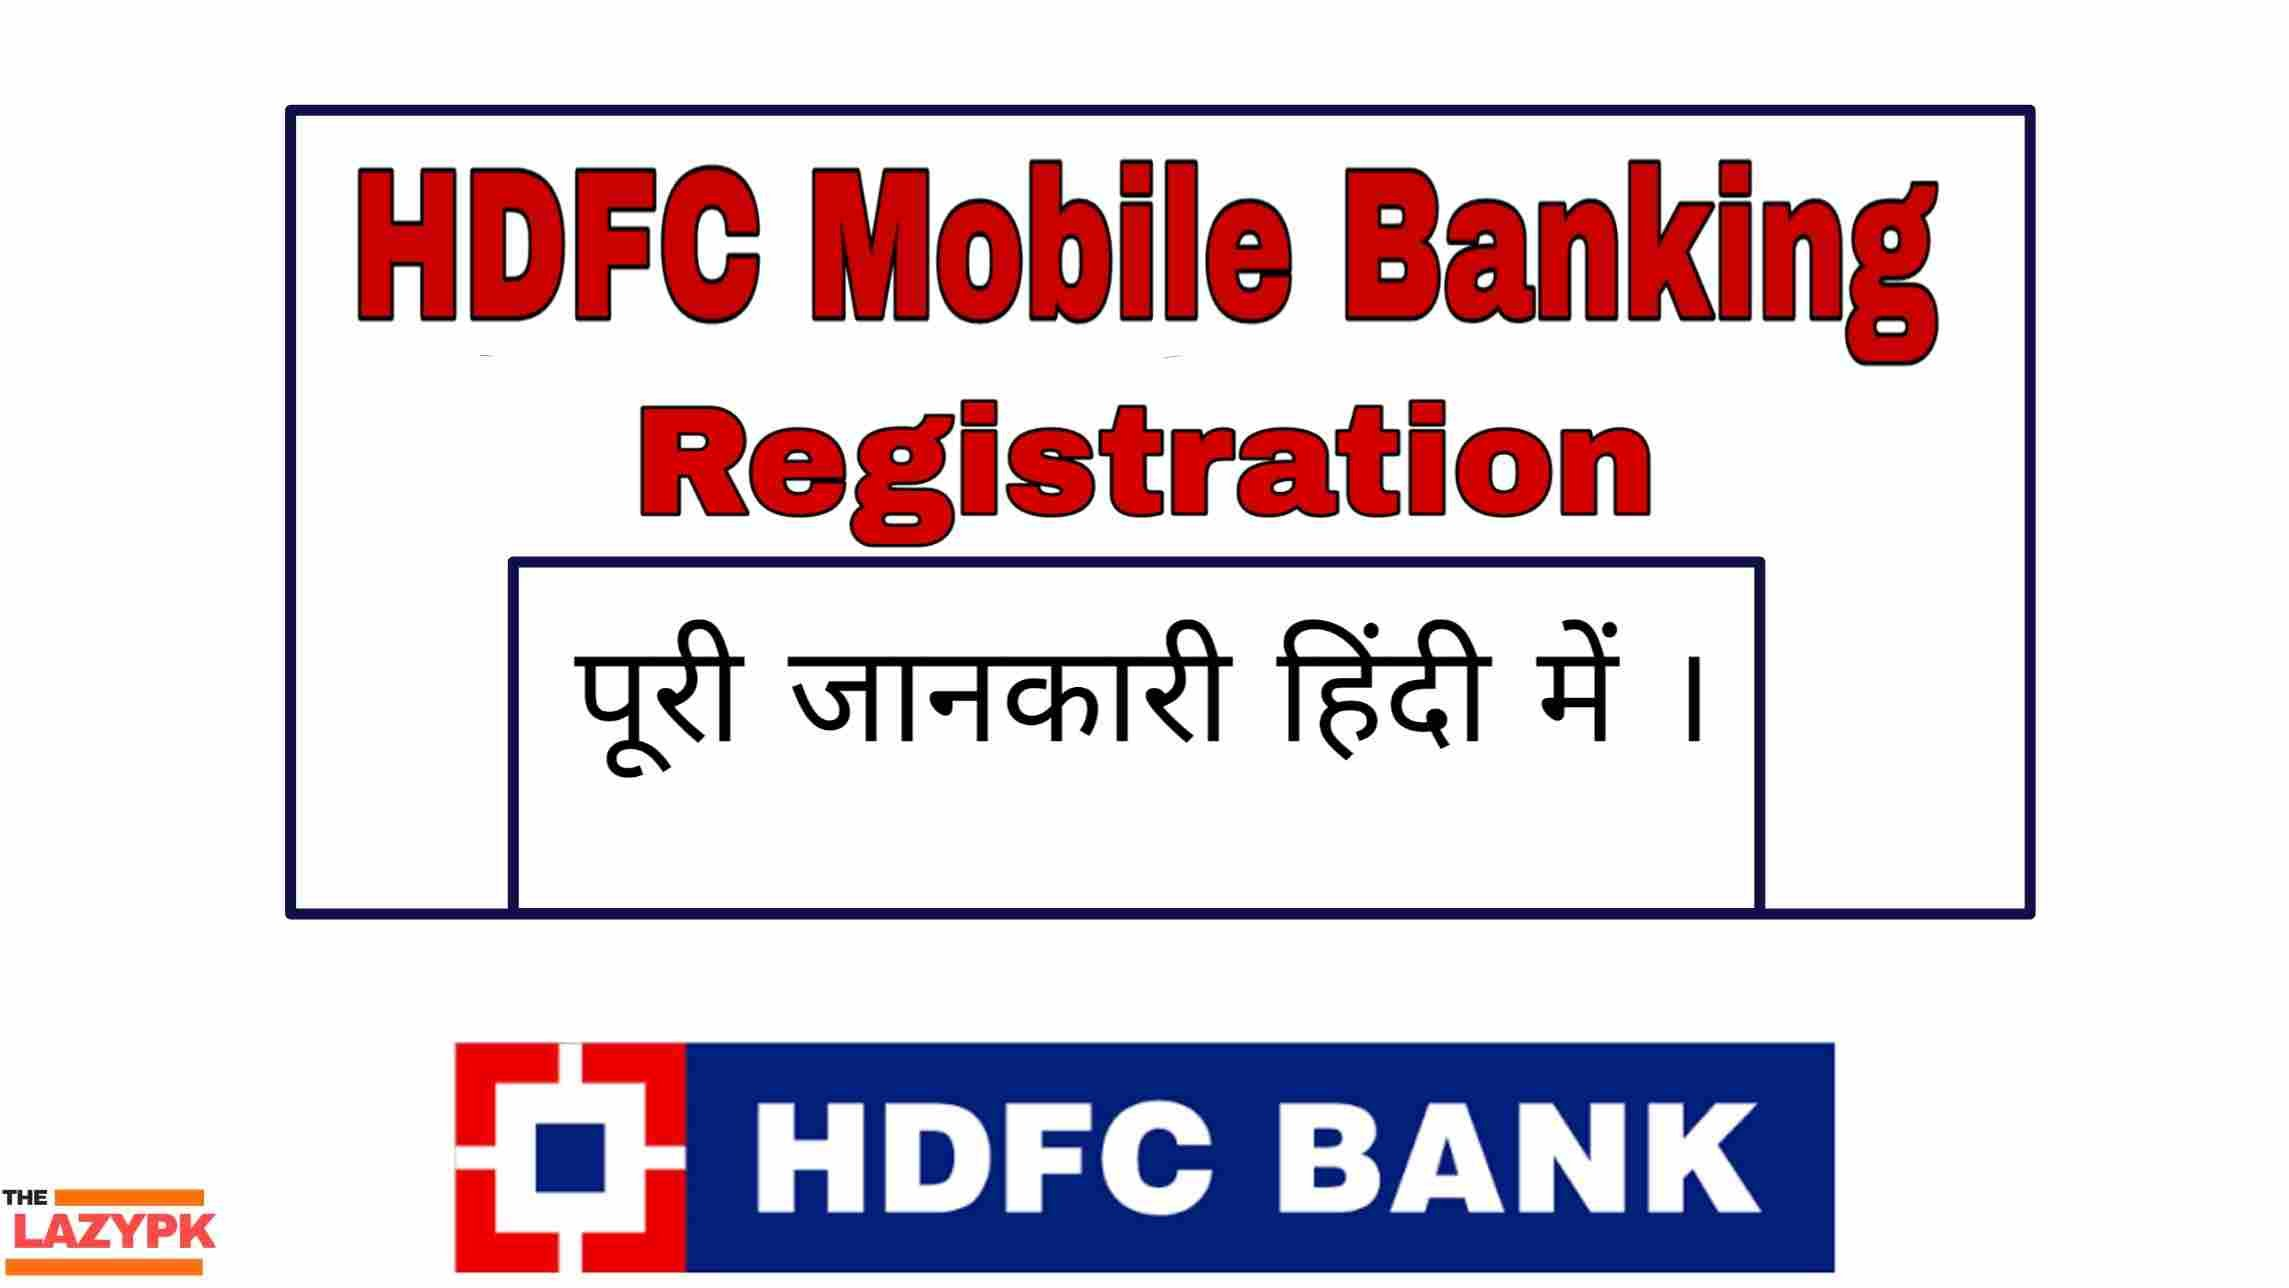 HDFC Mobile Banking Registration